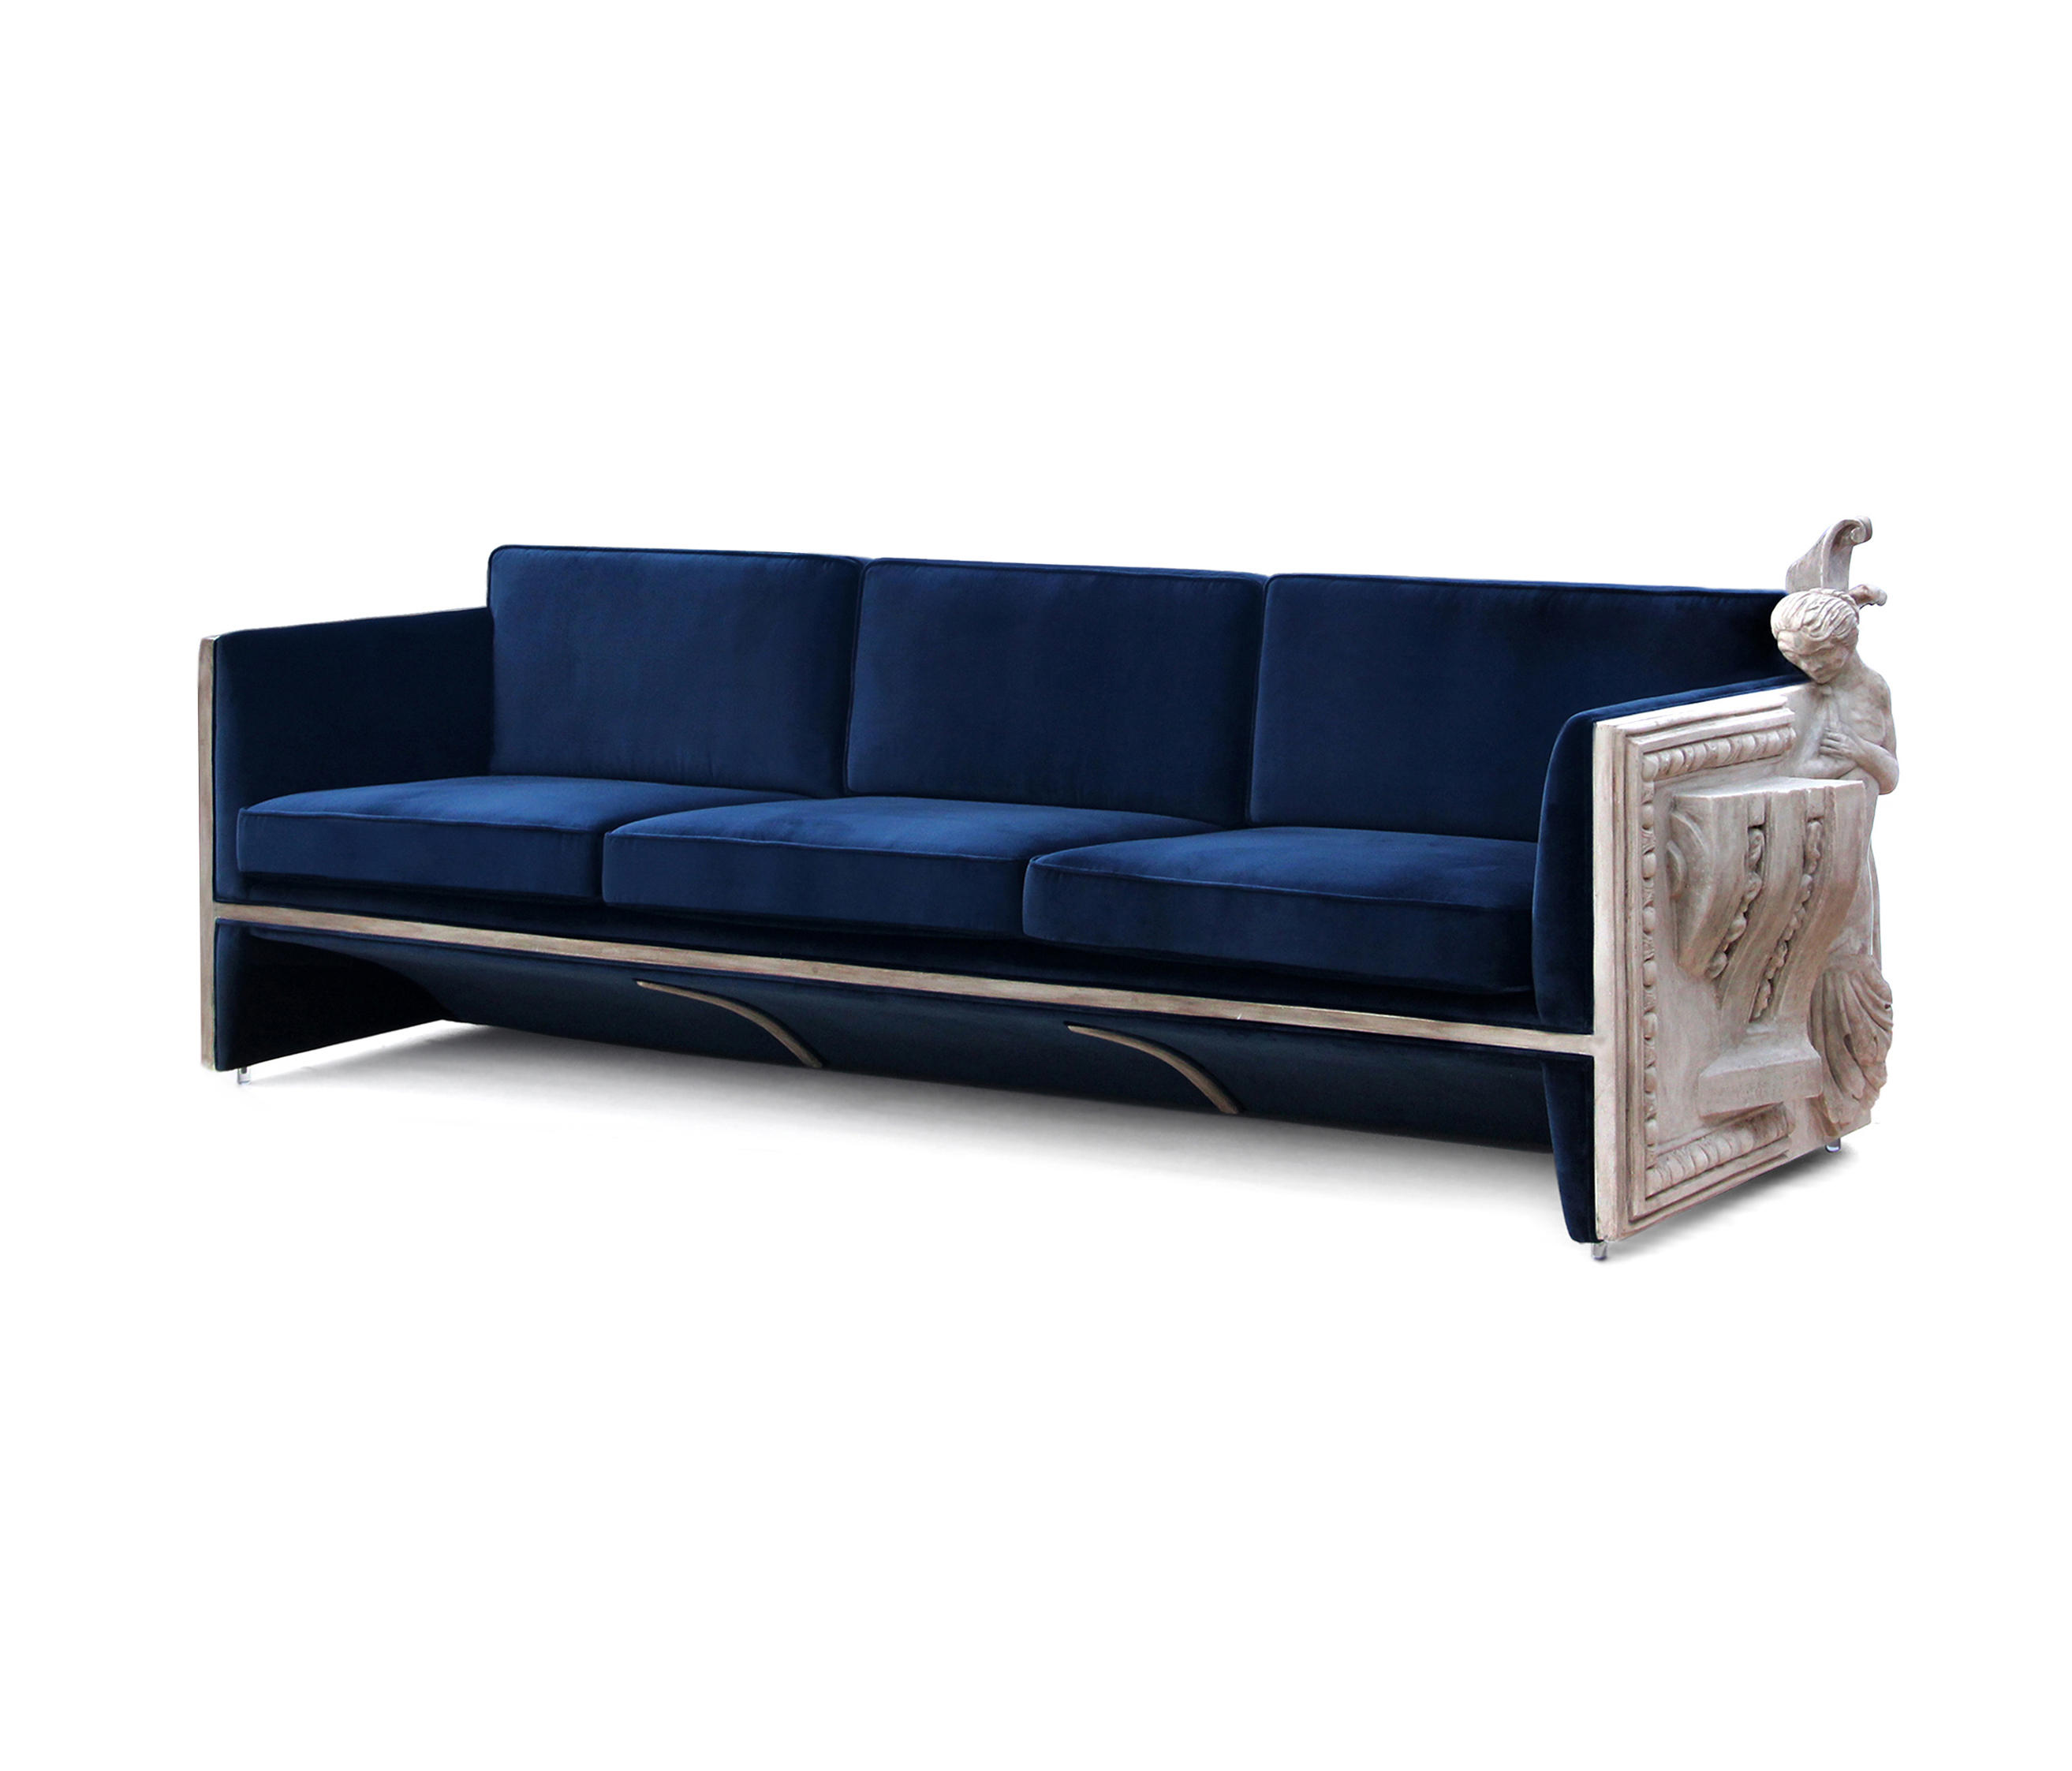 VERSAILLES SOFA - Sofas from Boca do lobo | Architonic